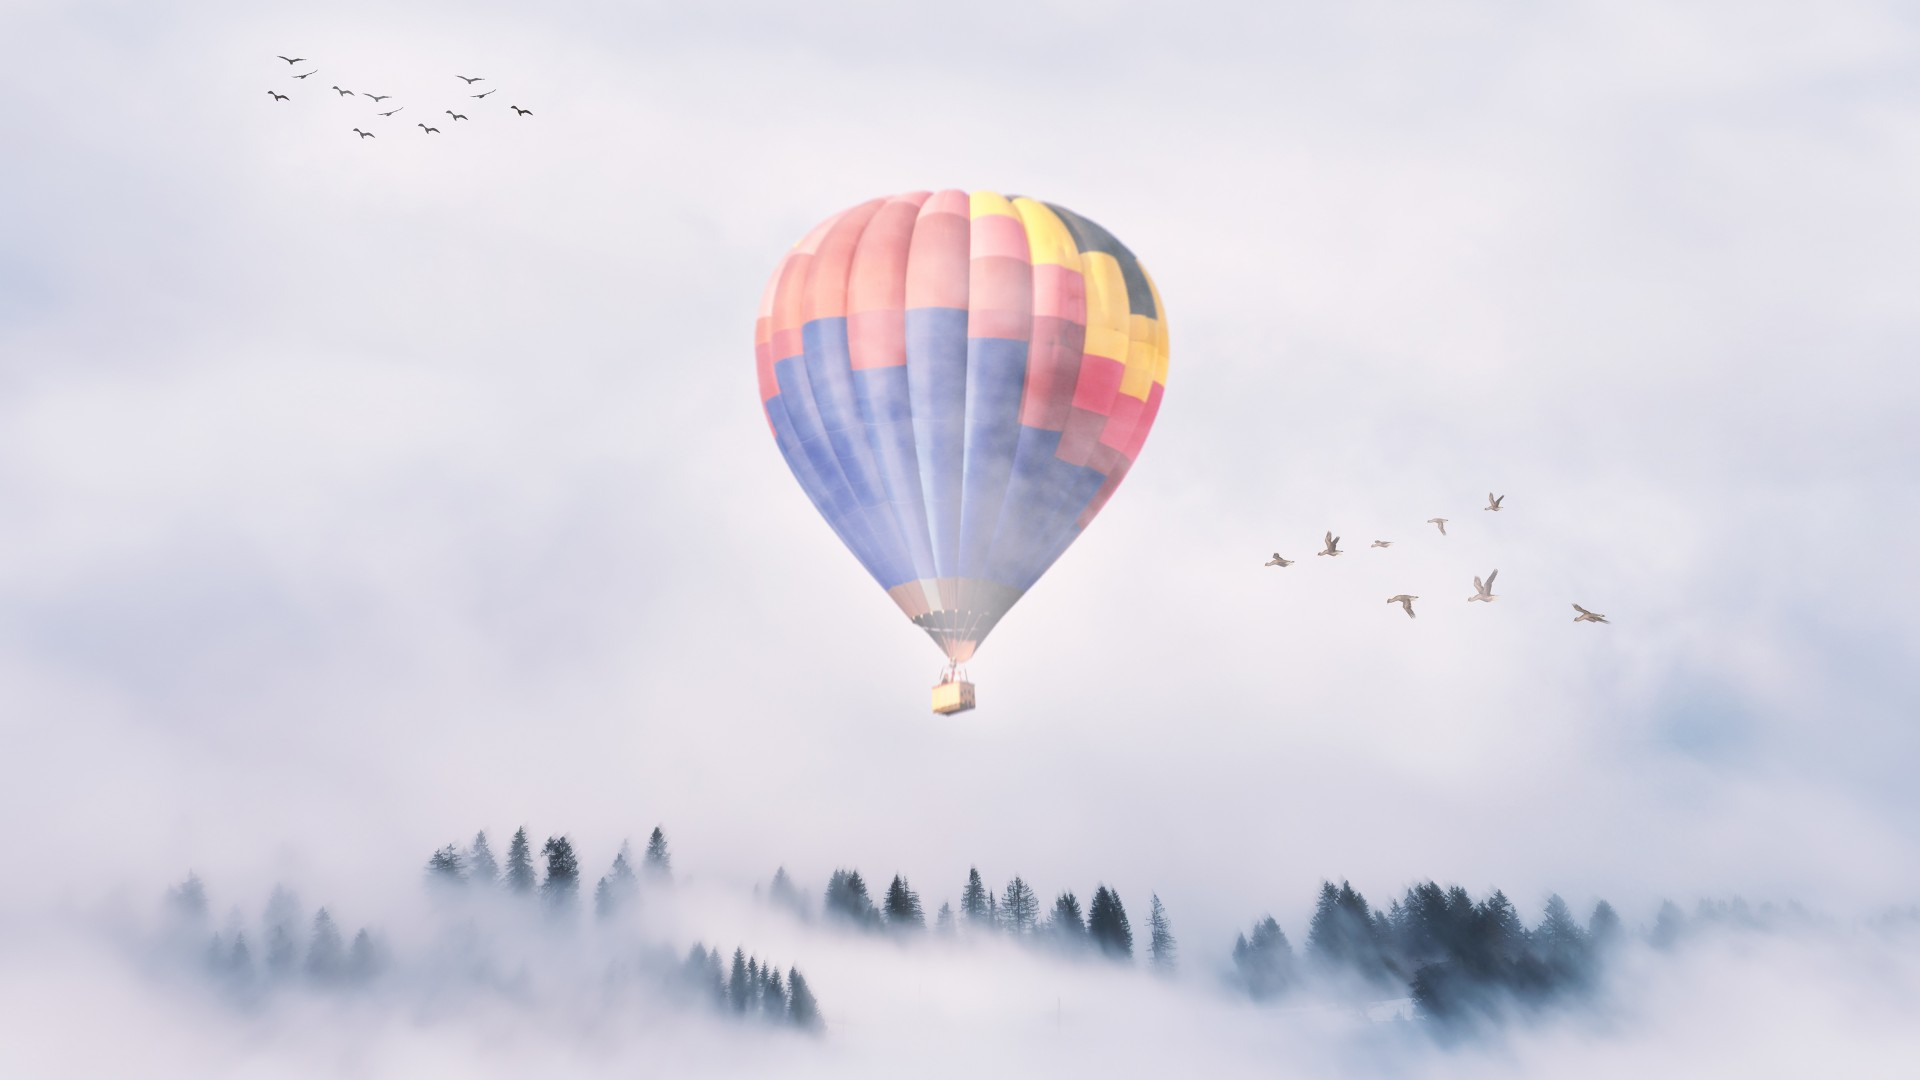 Cute Wallpaper For Iphone 6 Hd Hot Air Balloon Mist 4k Wallpapers Hd Wallpapers Id 24985